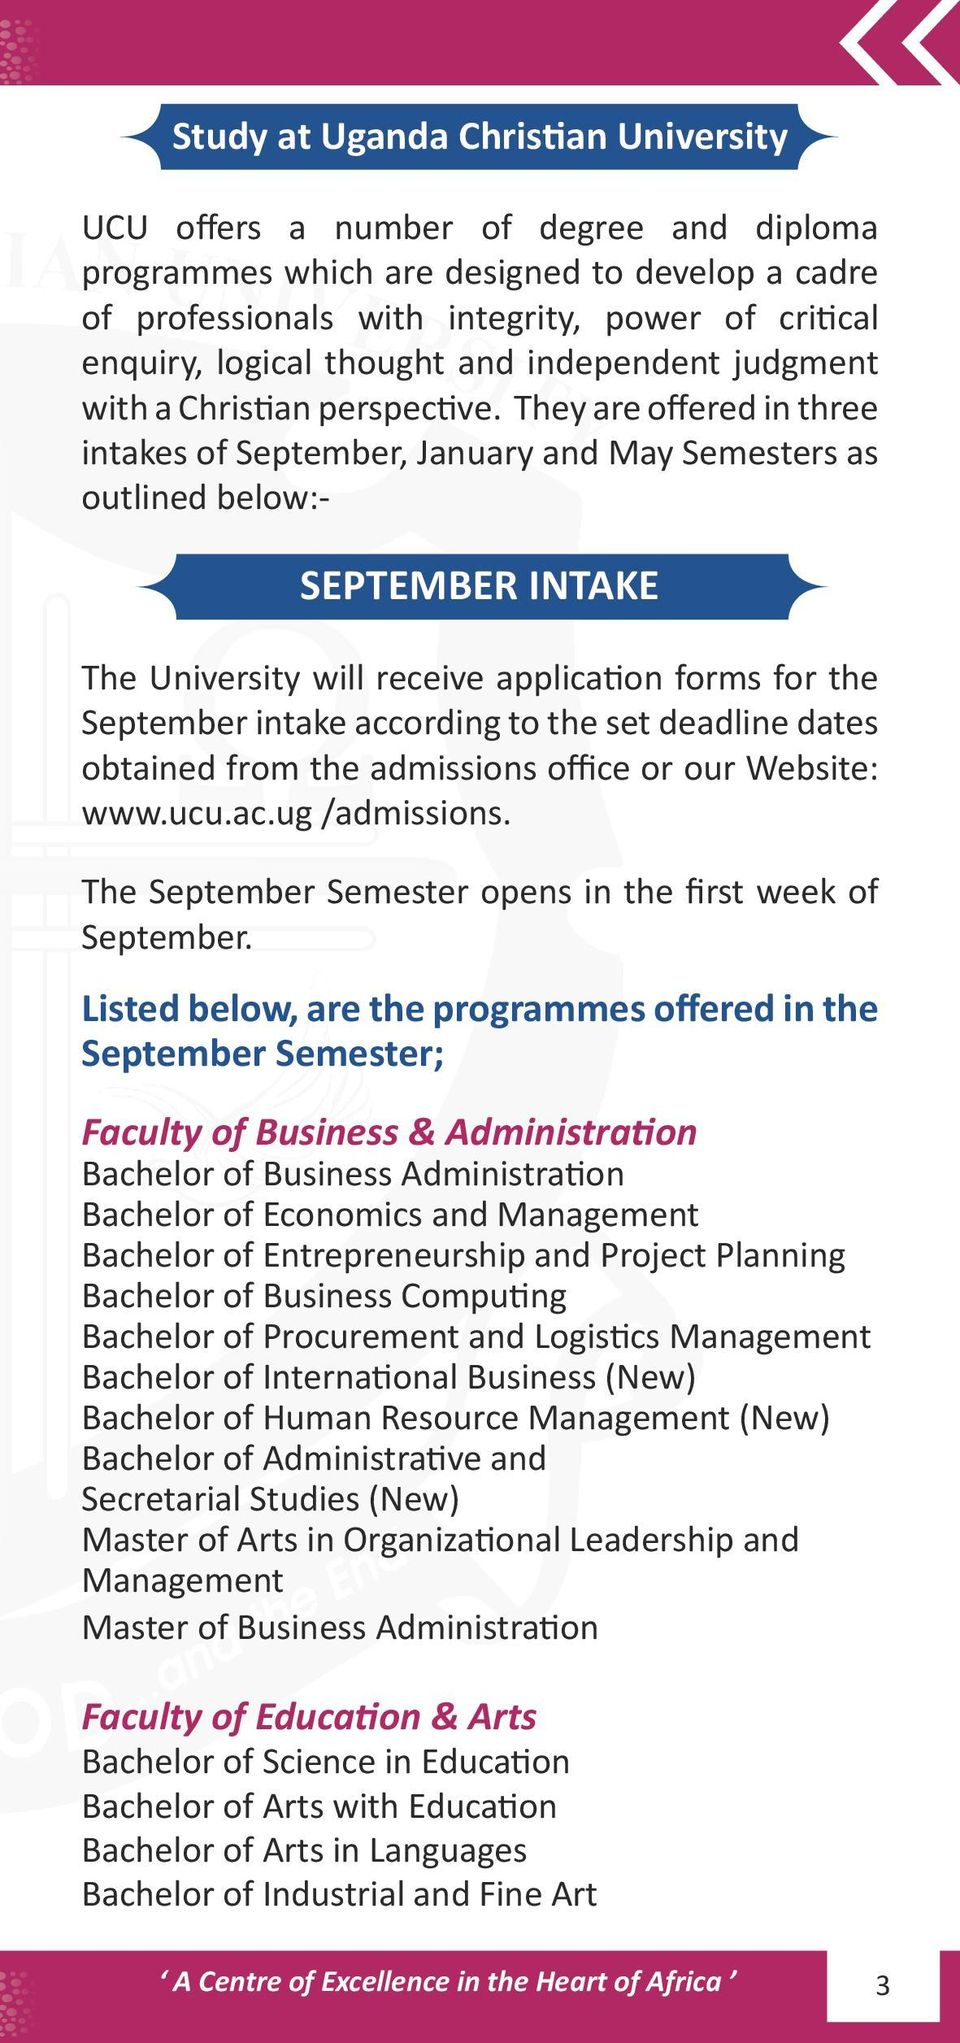 They are offered in three intakes of September, January and May Semesters as outlined below:- SEPTEMBER INTAKE The University will receive application forms for the September intake according to the